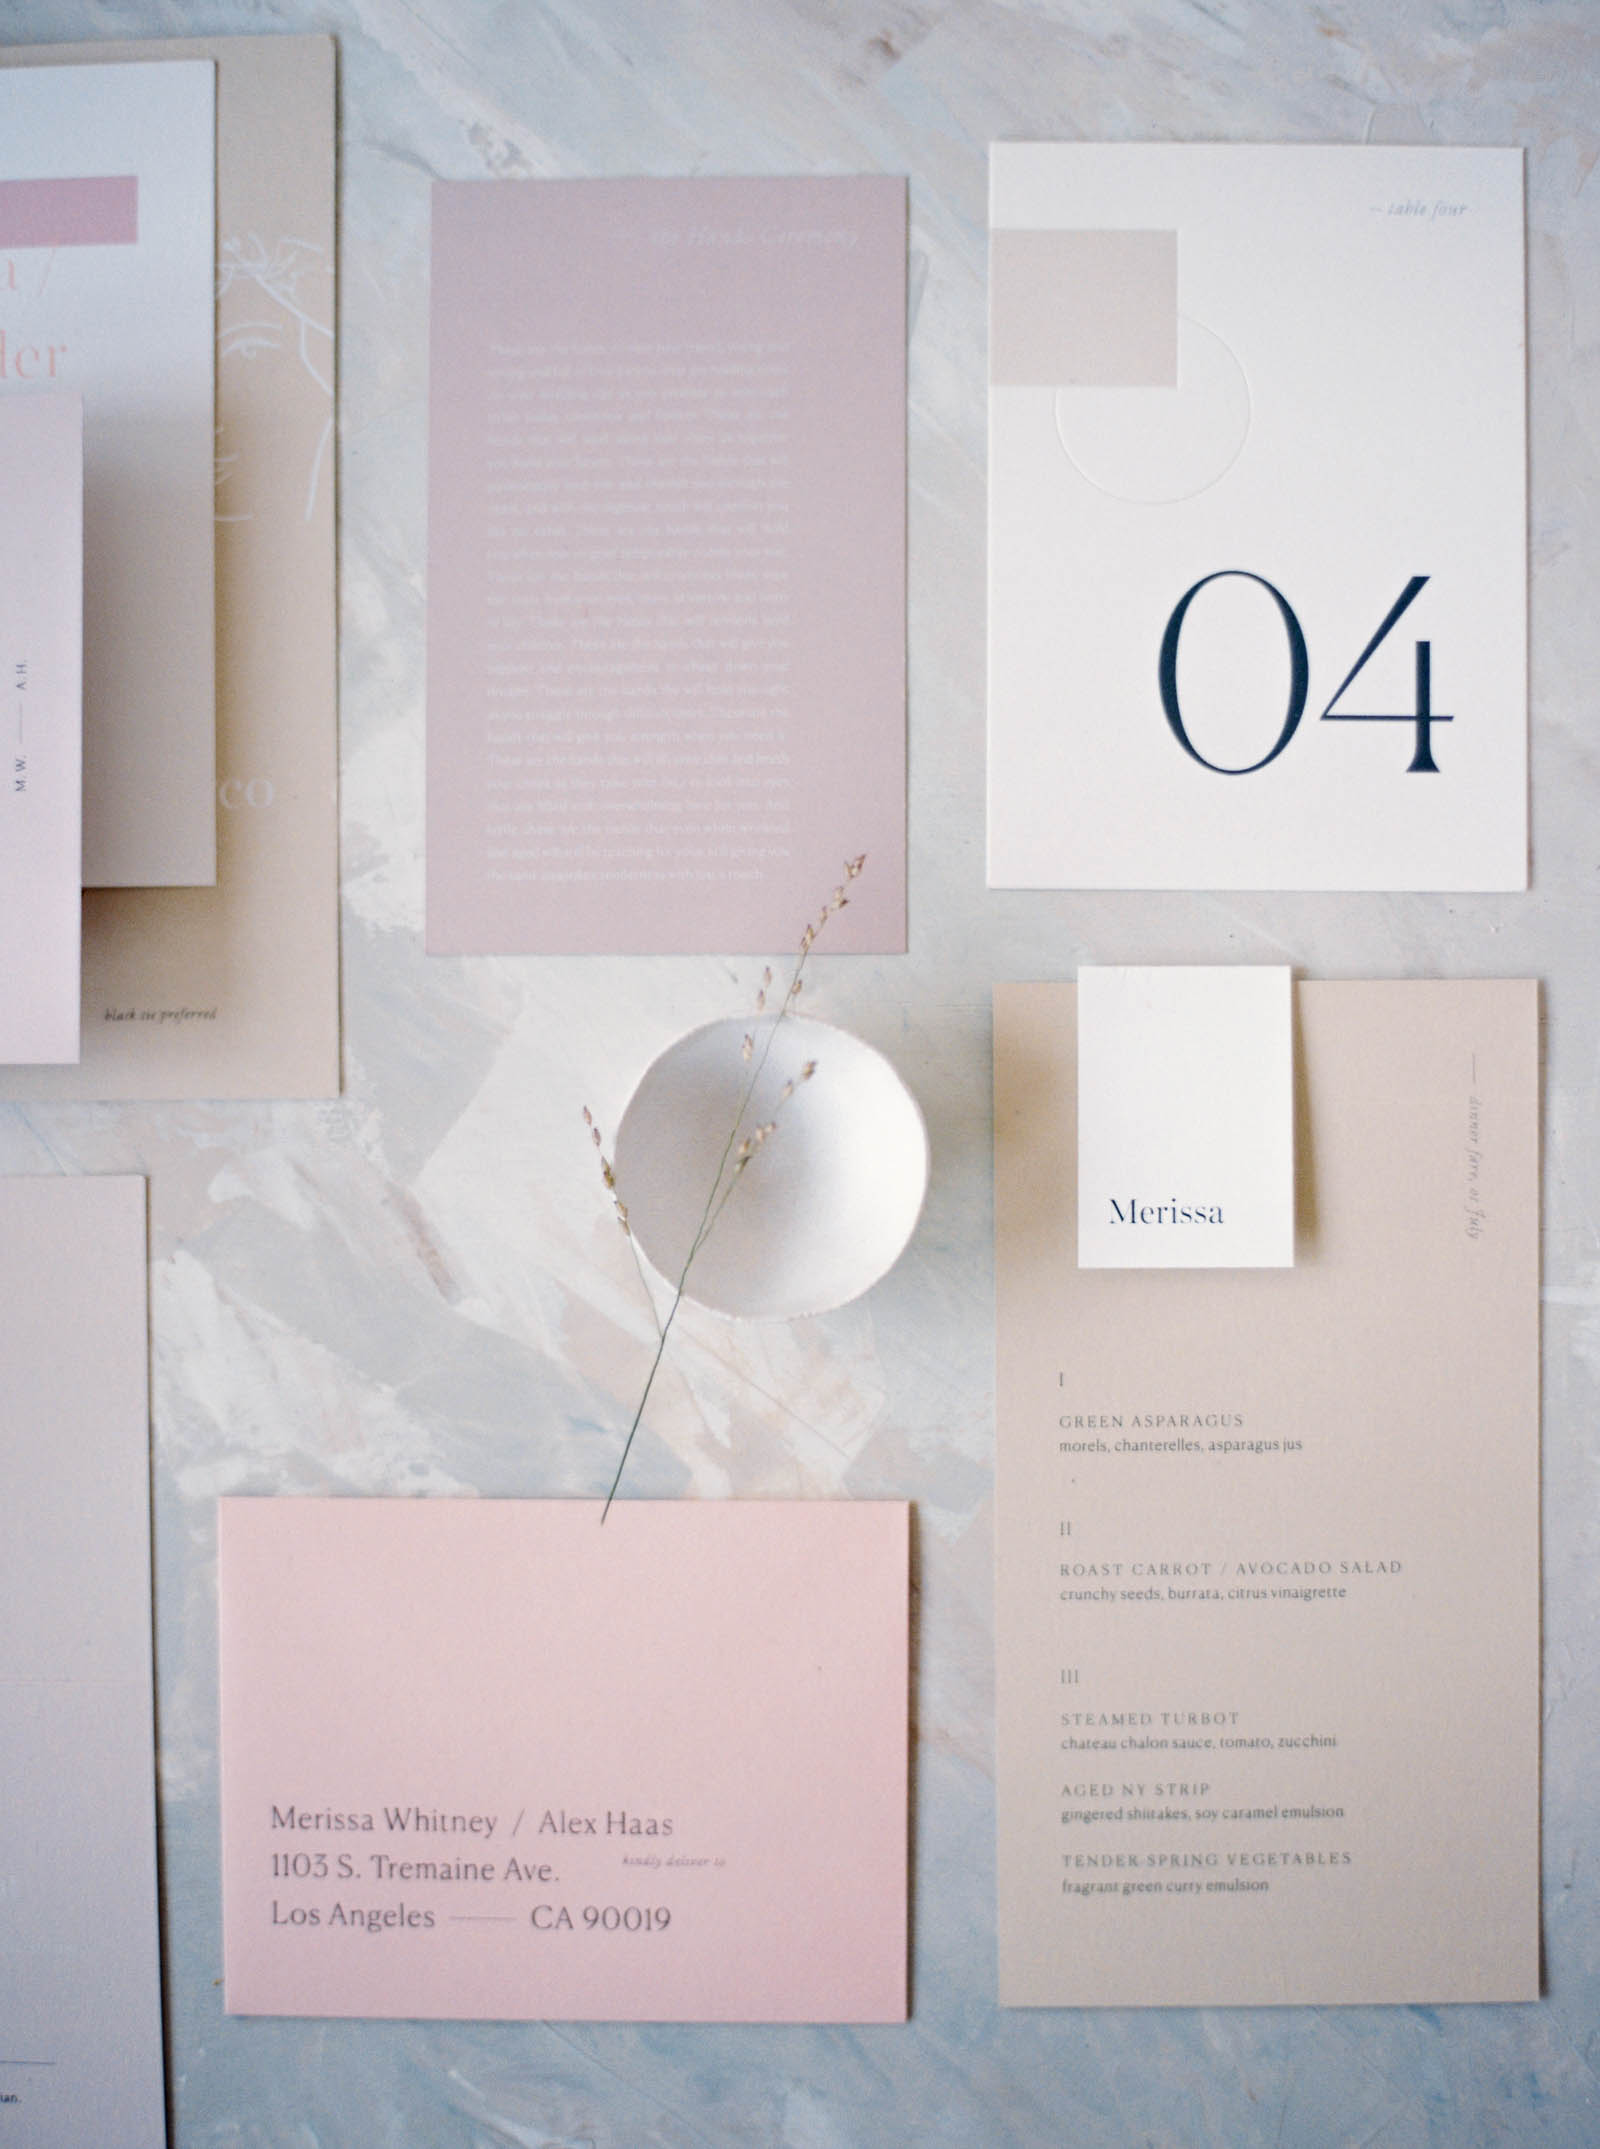 Modern minimalist wedding invitation captured by Pacific Northwest wedding photographer Anna Peters